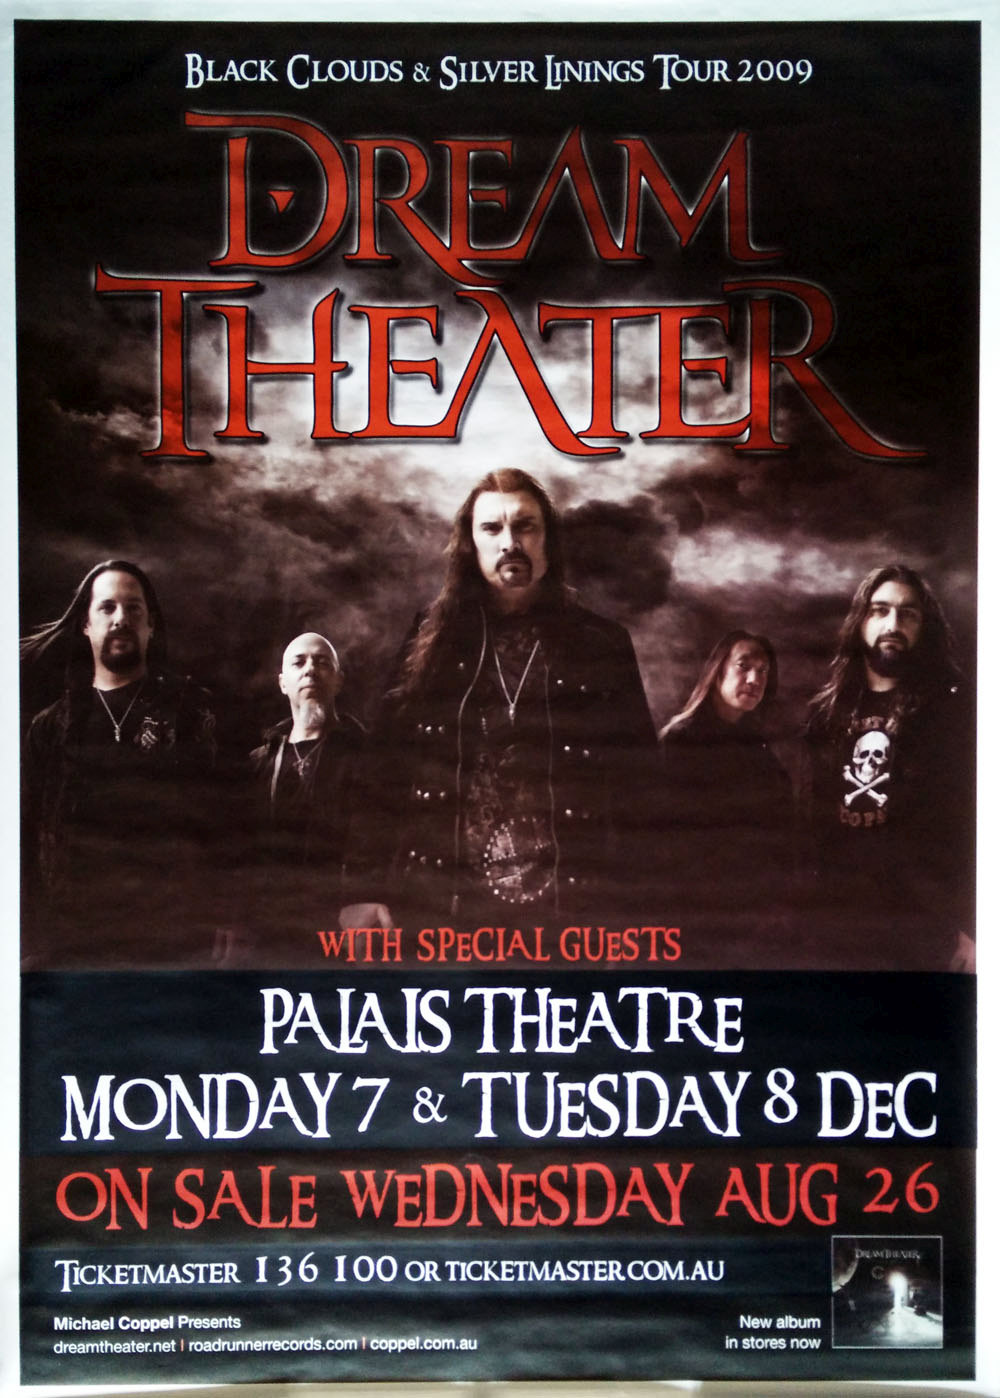 DREAM THEATER - Palais Theatre